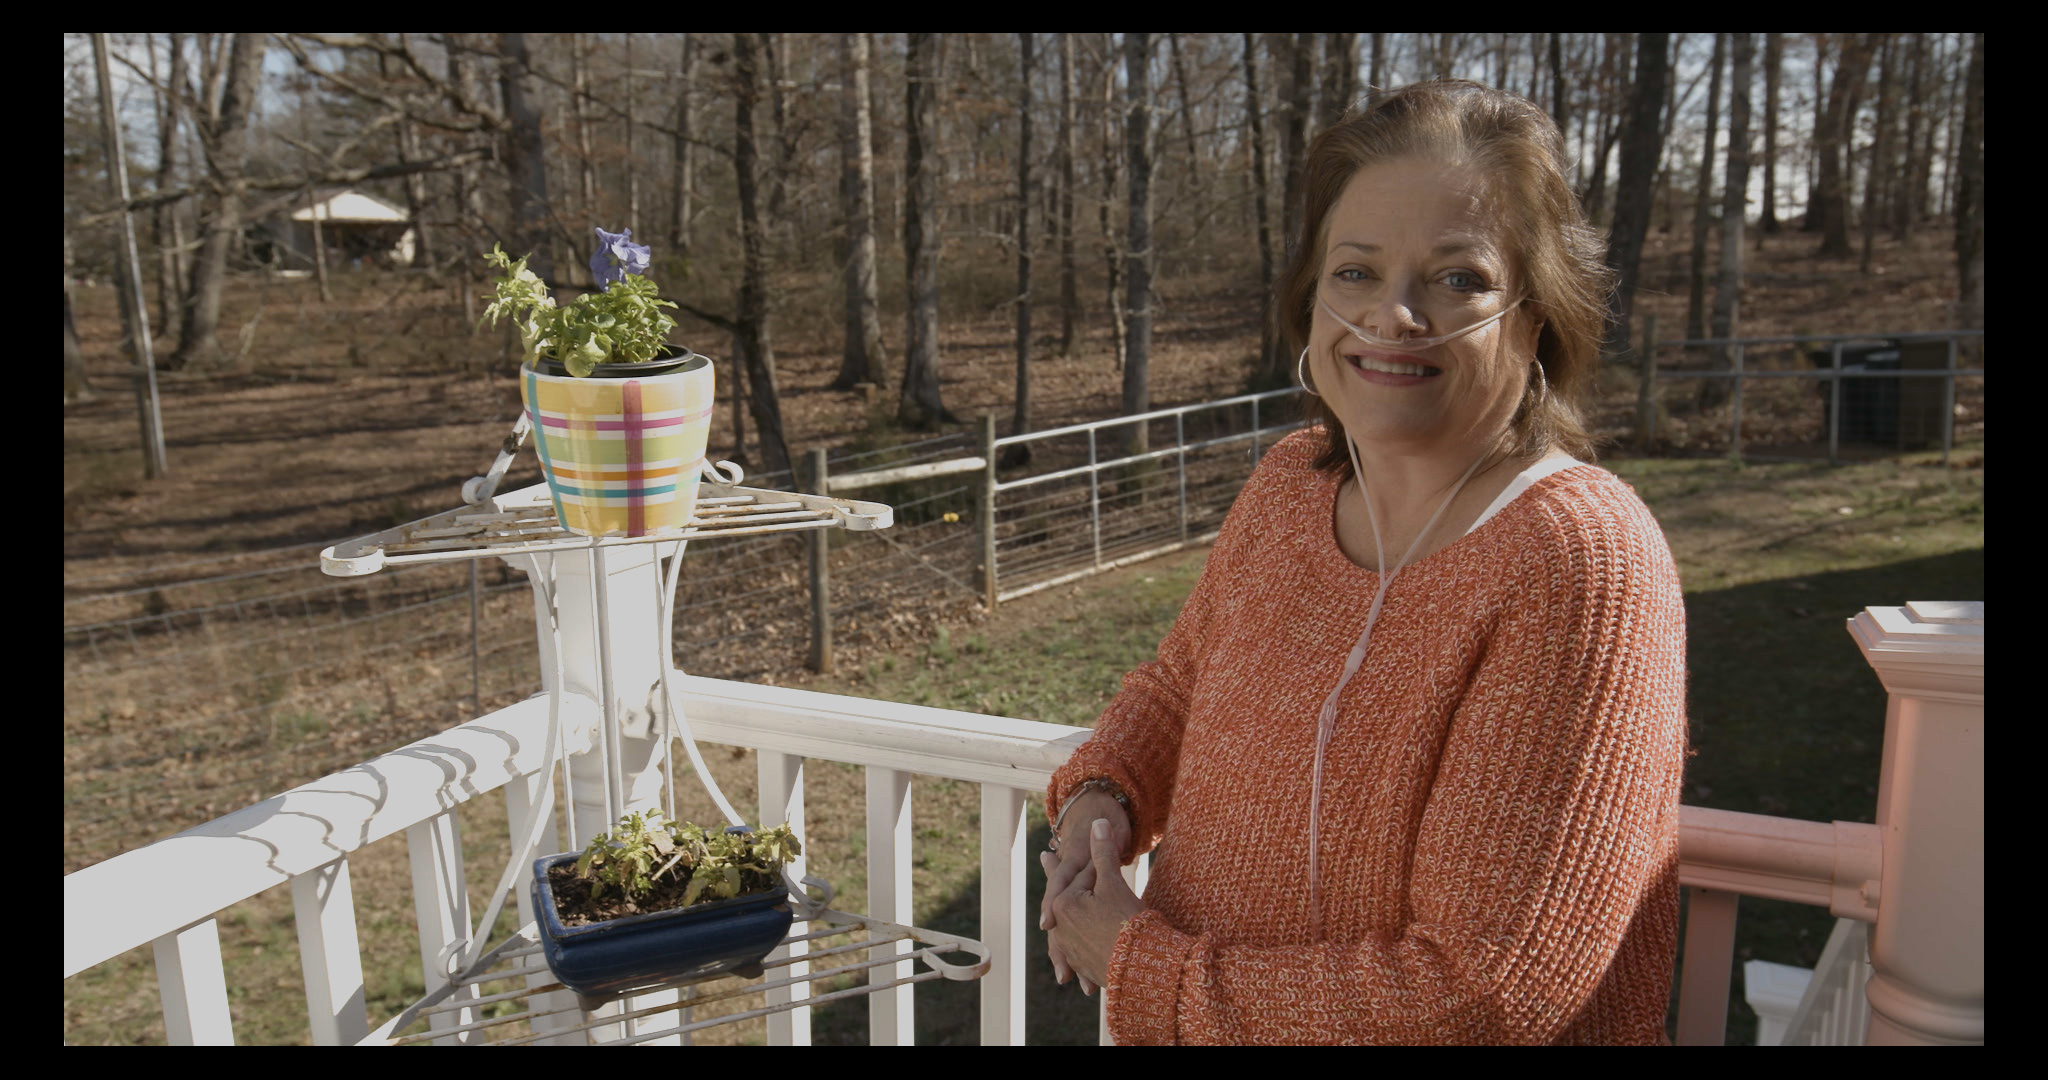 Tina plays the piano at her local church in South Carolina and lives with COPD